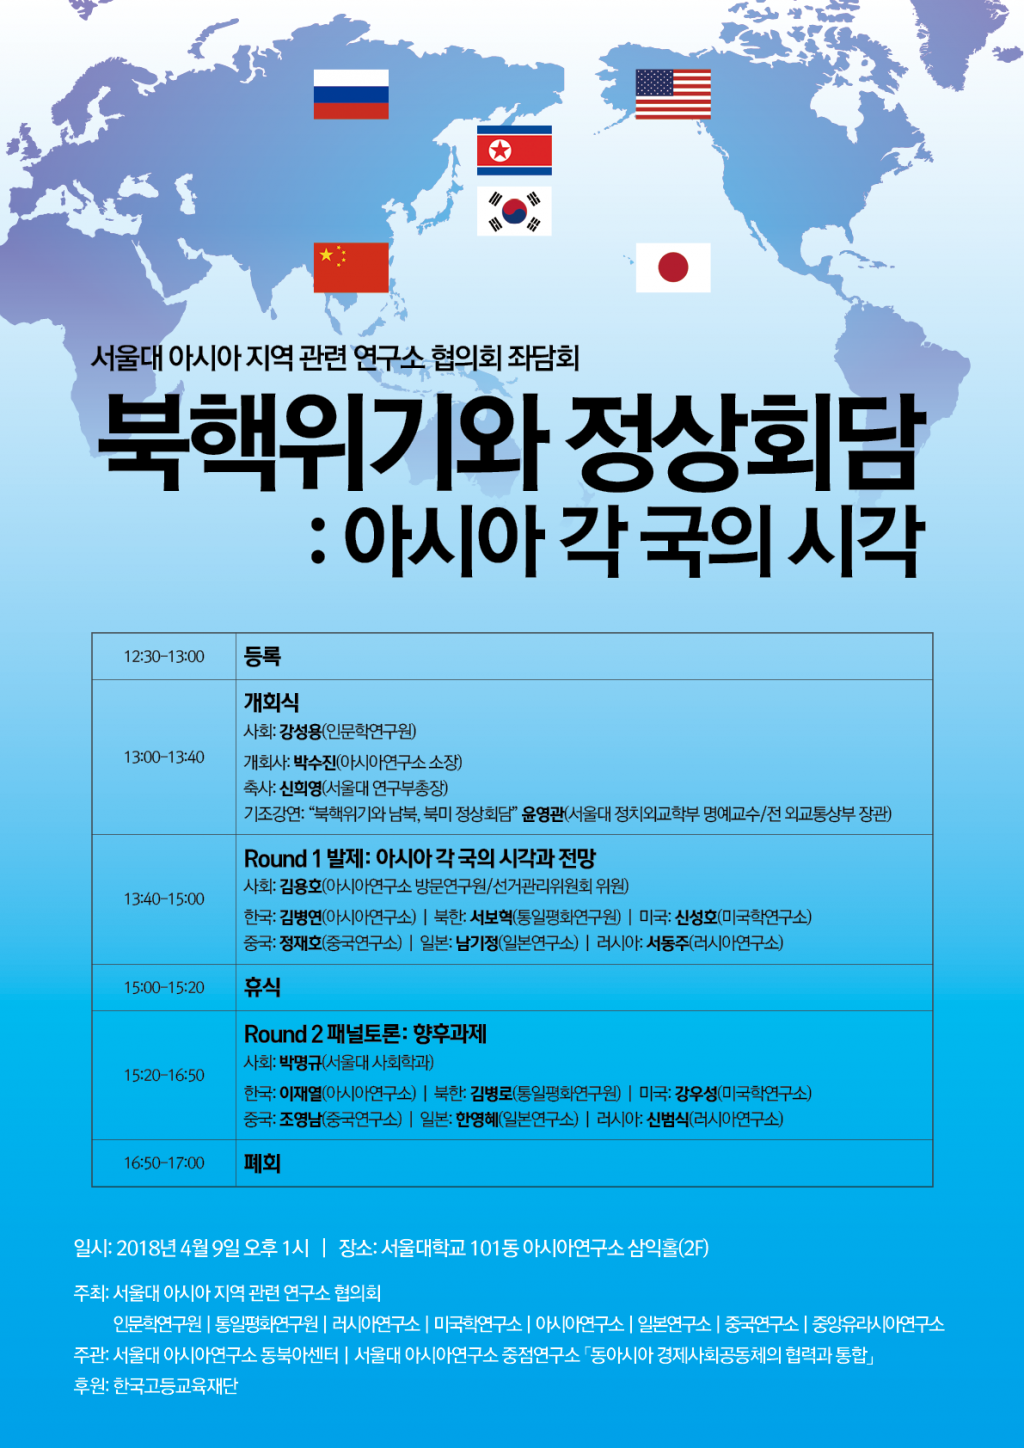 North Korean Nuclear Crisis and Summit Meeting in East Asia: Perspectives of Asian Countries